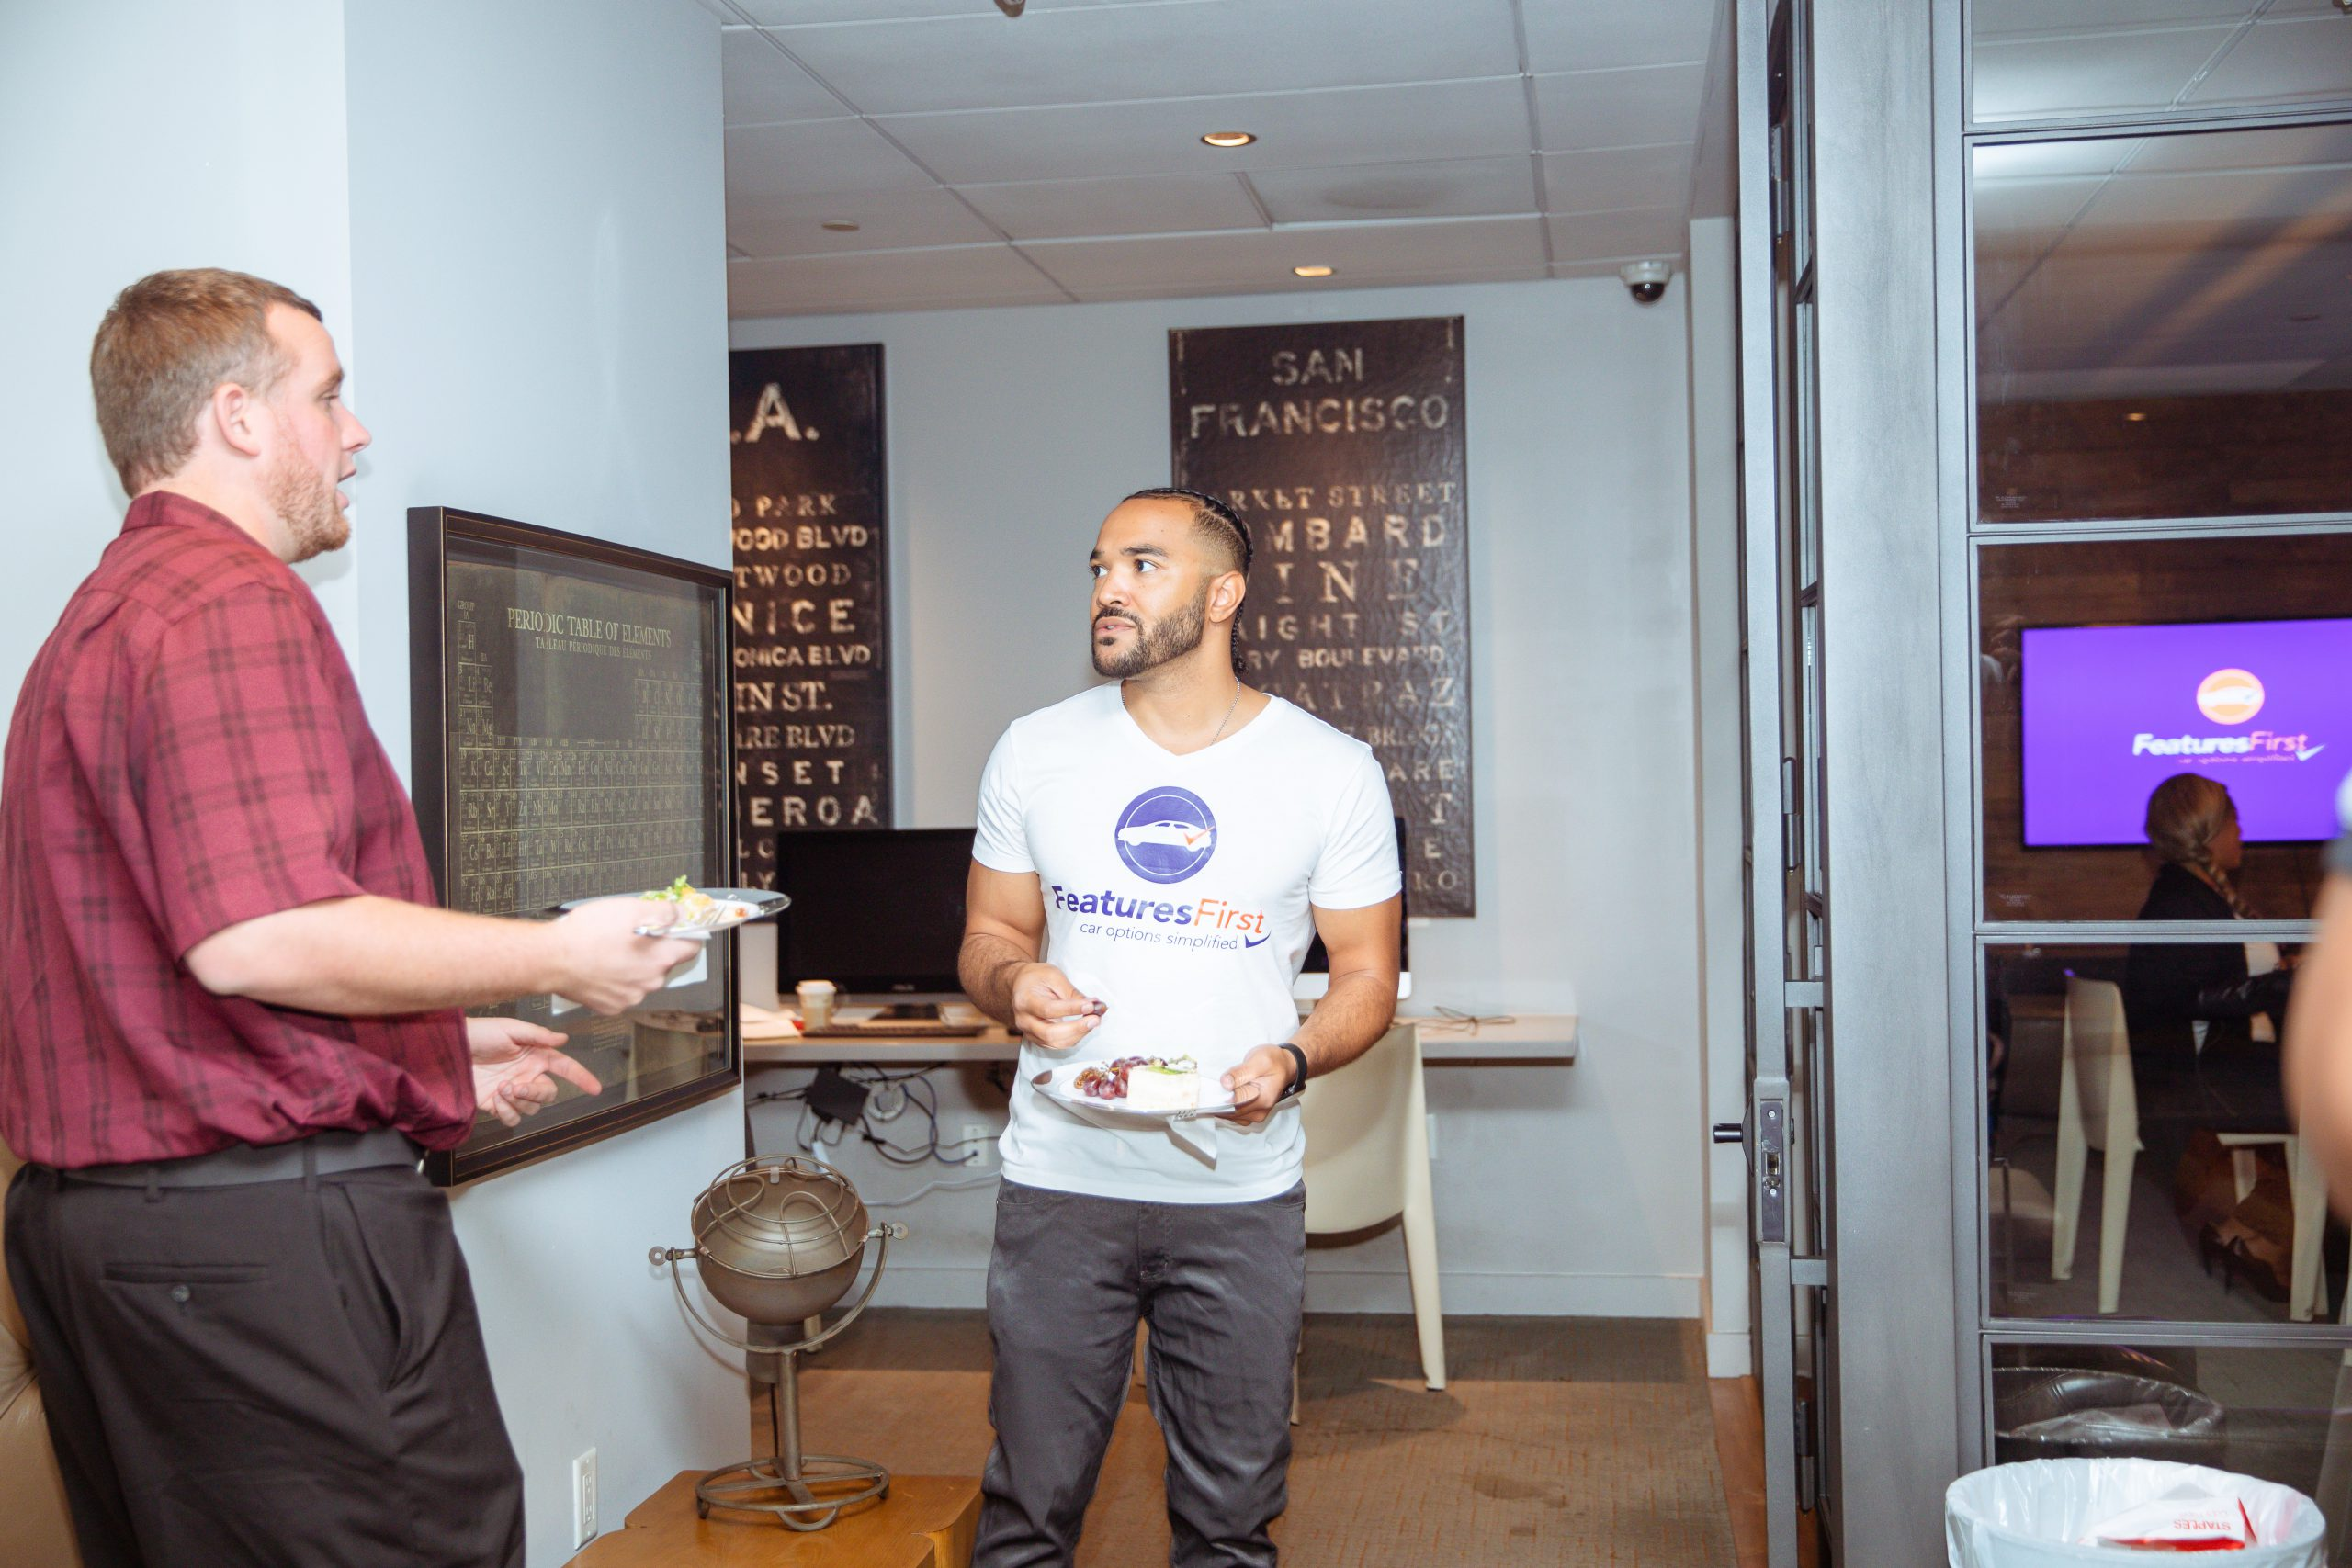 A man wears a FeaturesFirst shirt talking to a man in a red plaid shirt, both standing in a hallway and holding plates of food